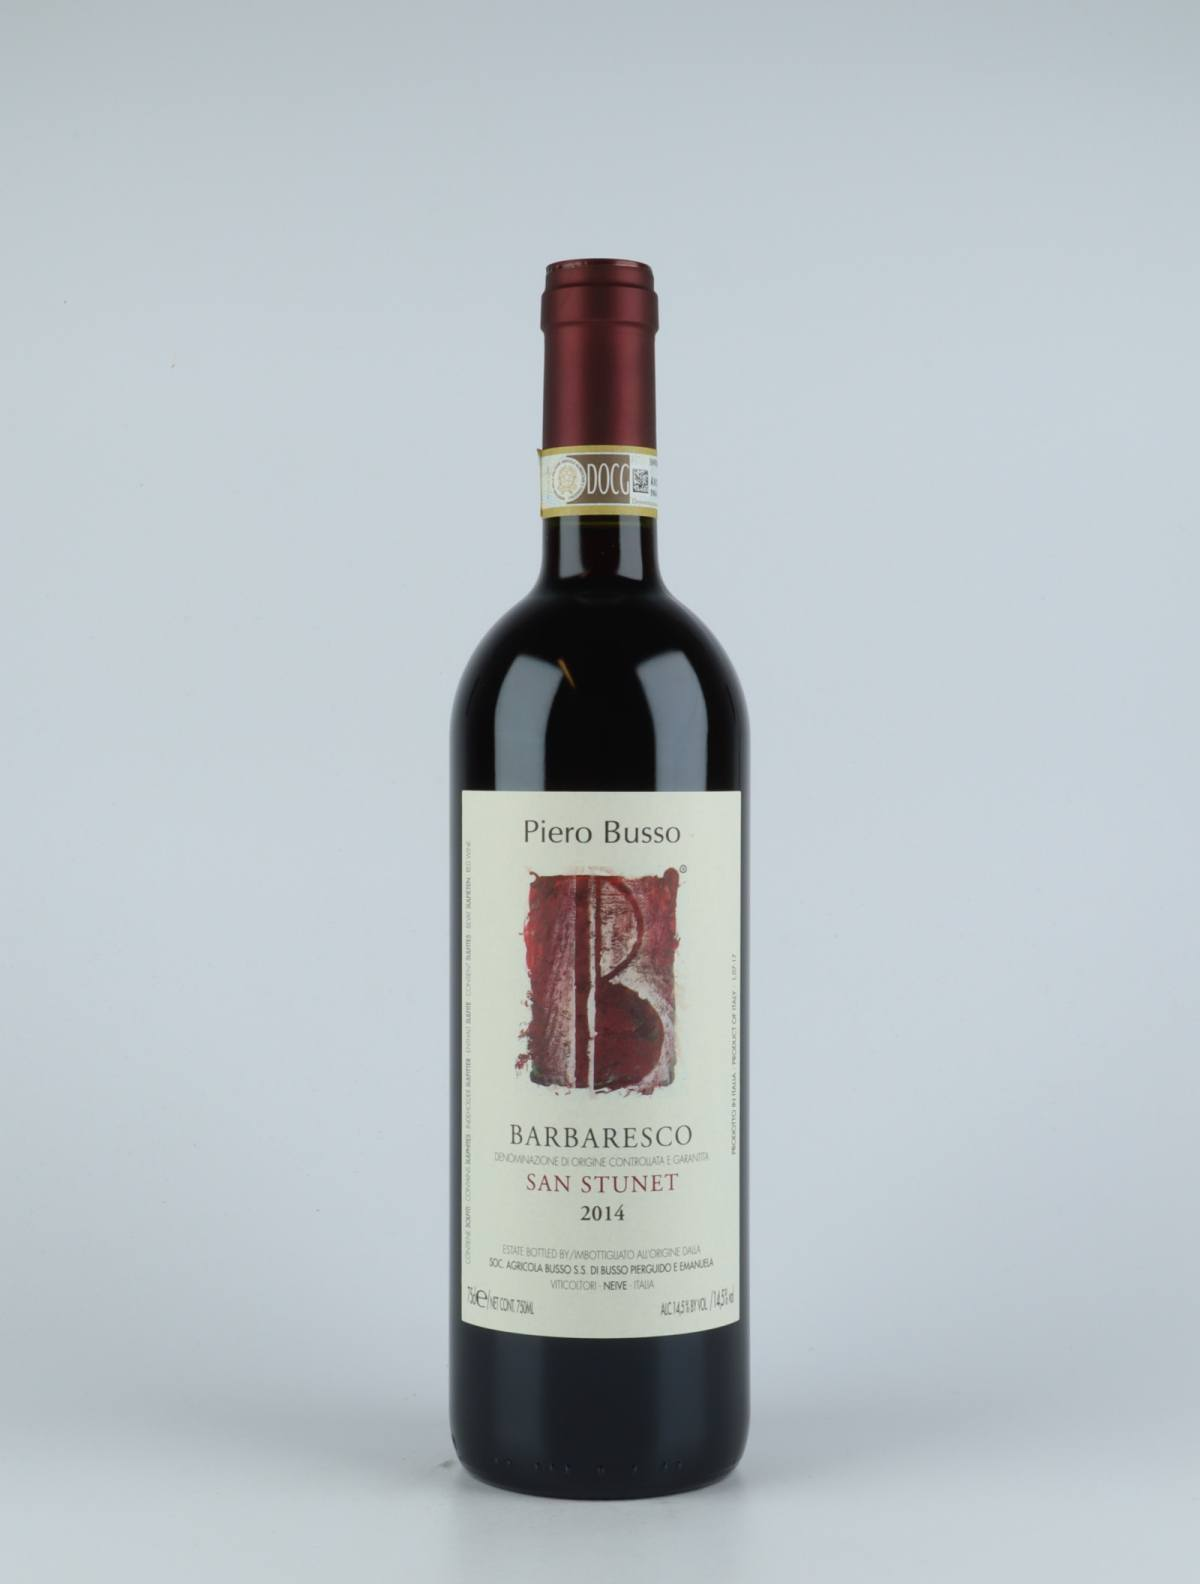 Barbaresco San Stunet